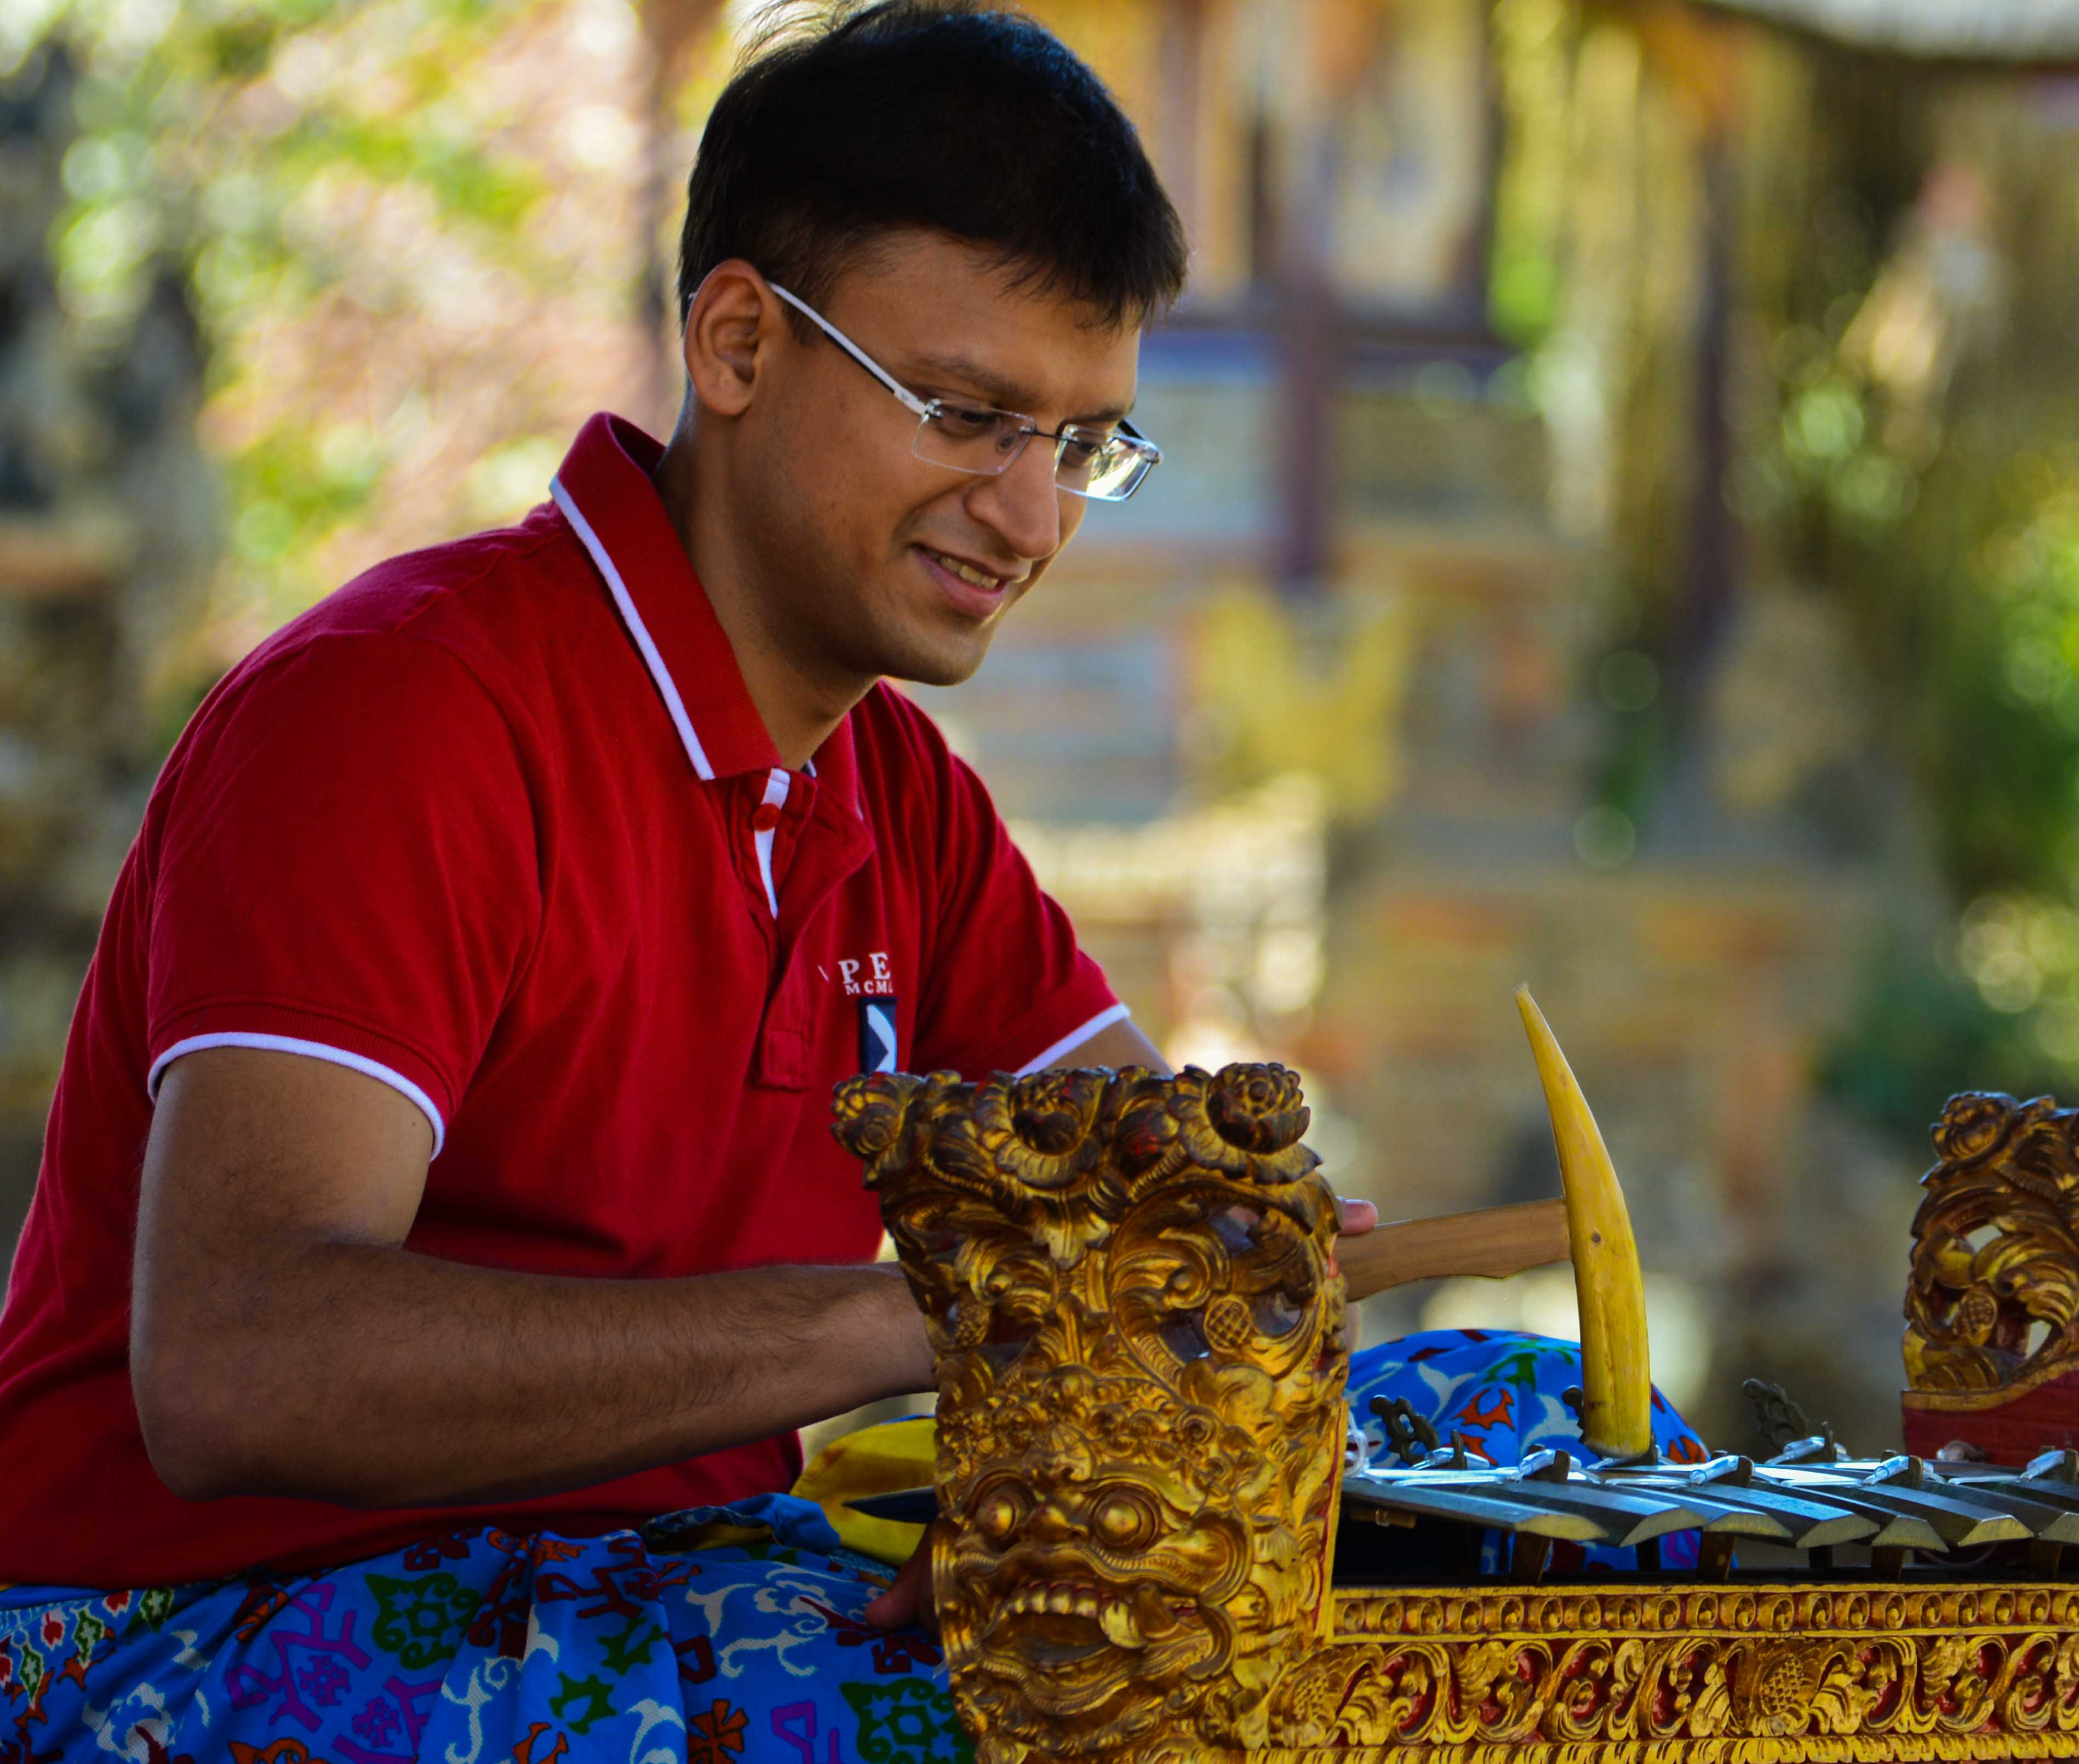 Akshat Trying His Hand on the Balinese Instrument